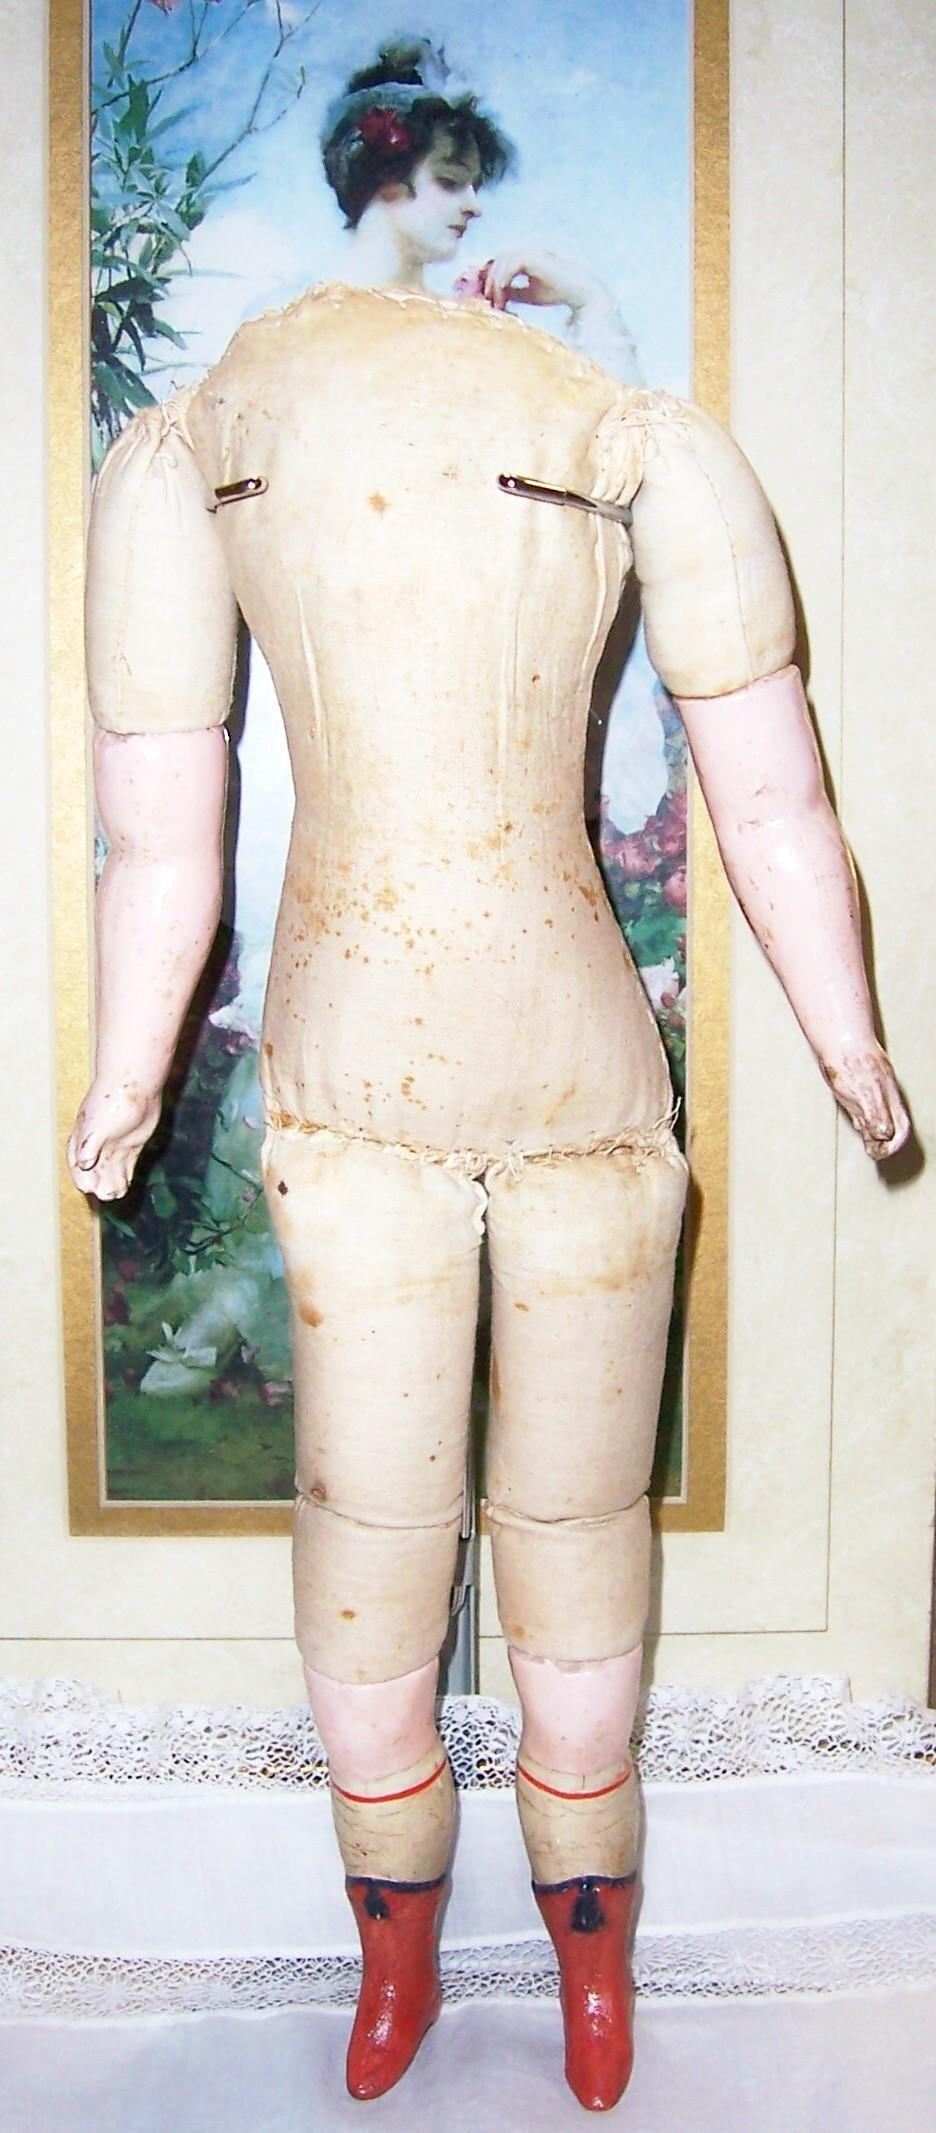 "SALE Antique 15"" Cloth Lady Doll Body w Compo Arms & Legs. Orange Boots for Papier Mache, Wax Over or Compo Head"